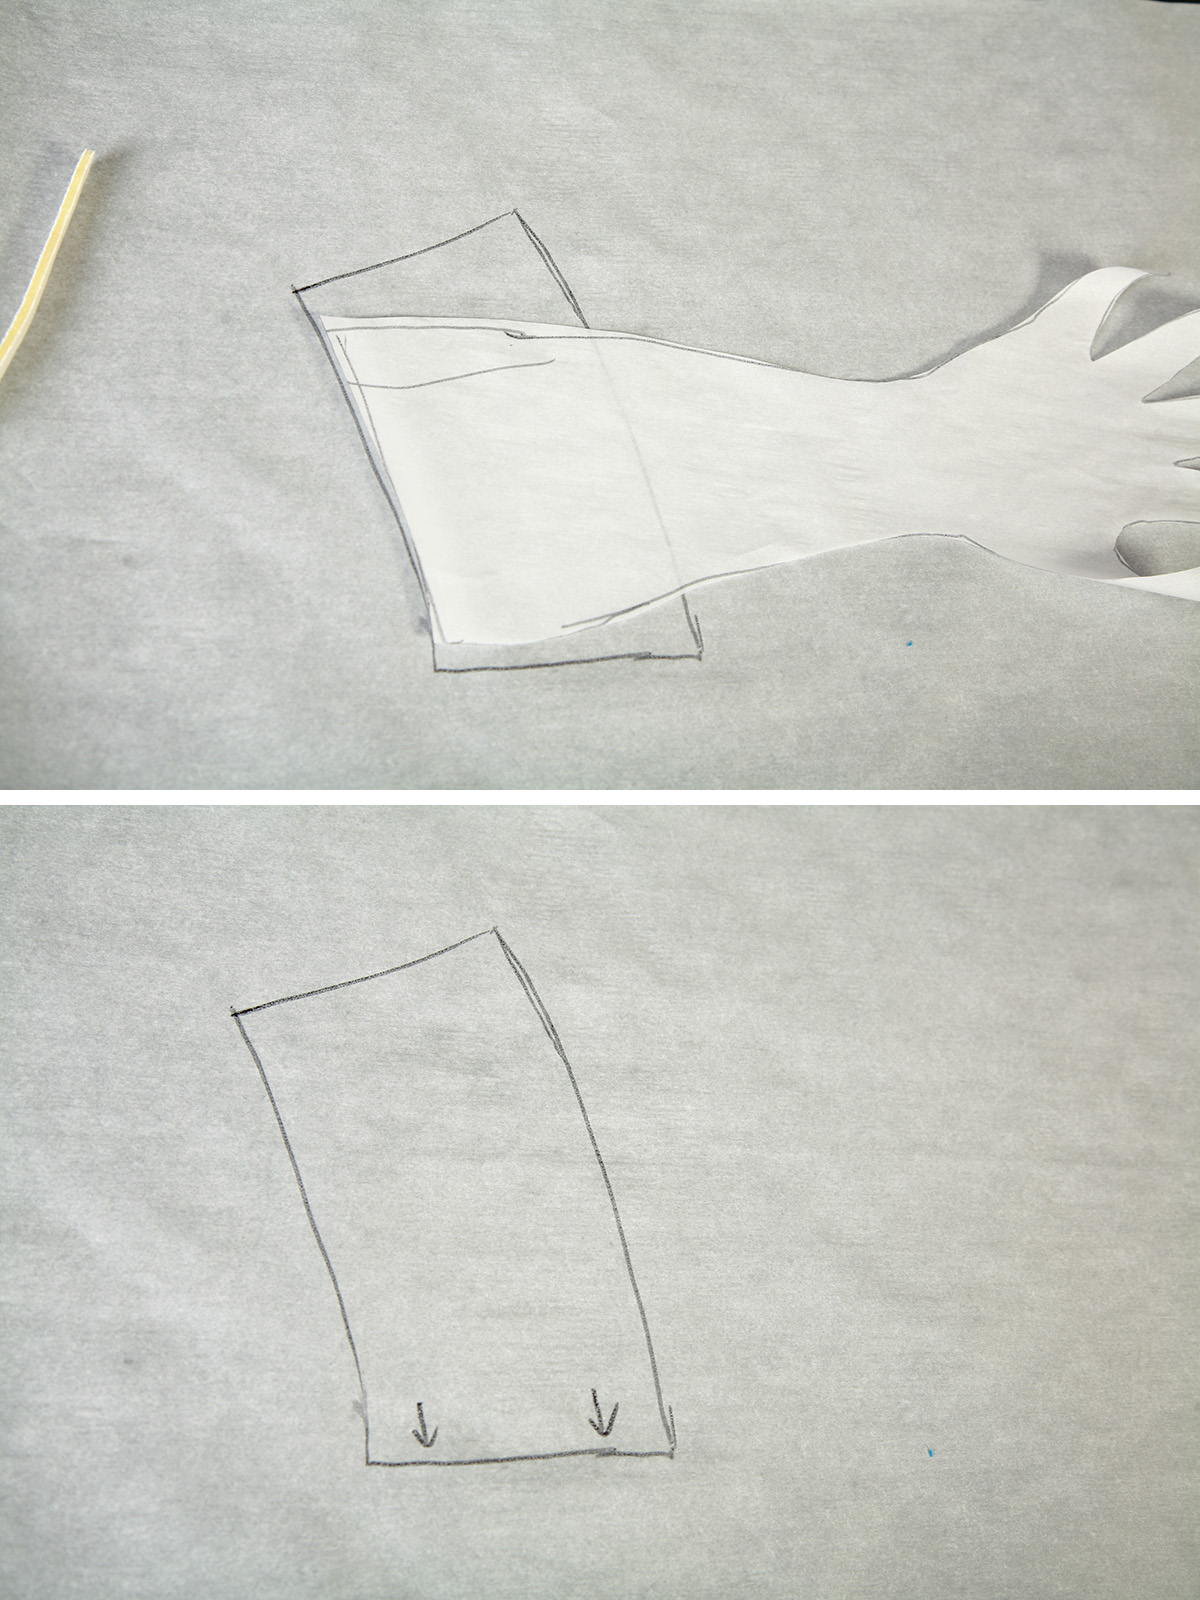 A two part compilation image showing the drafting of a cuff pattern.